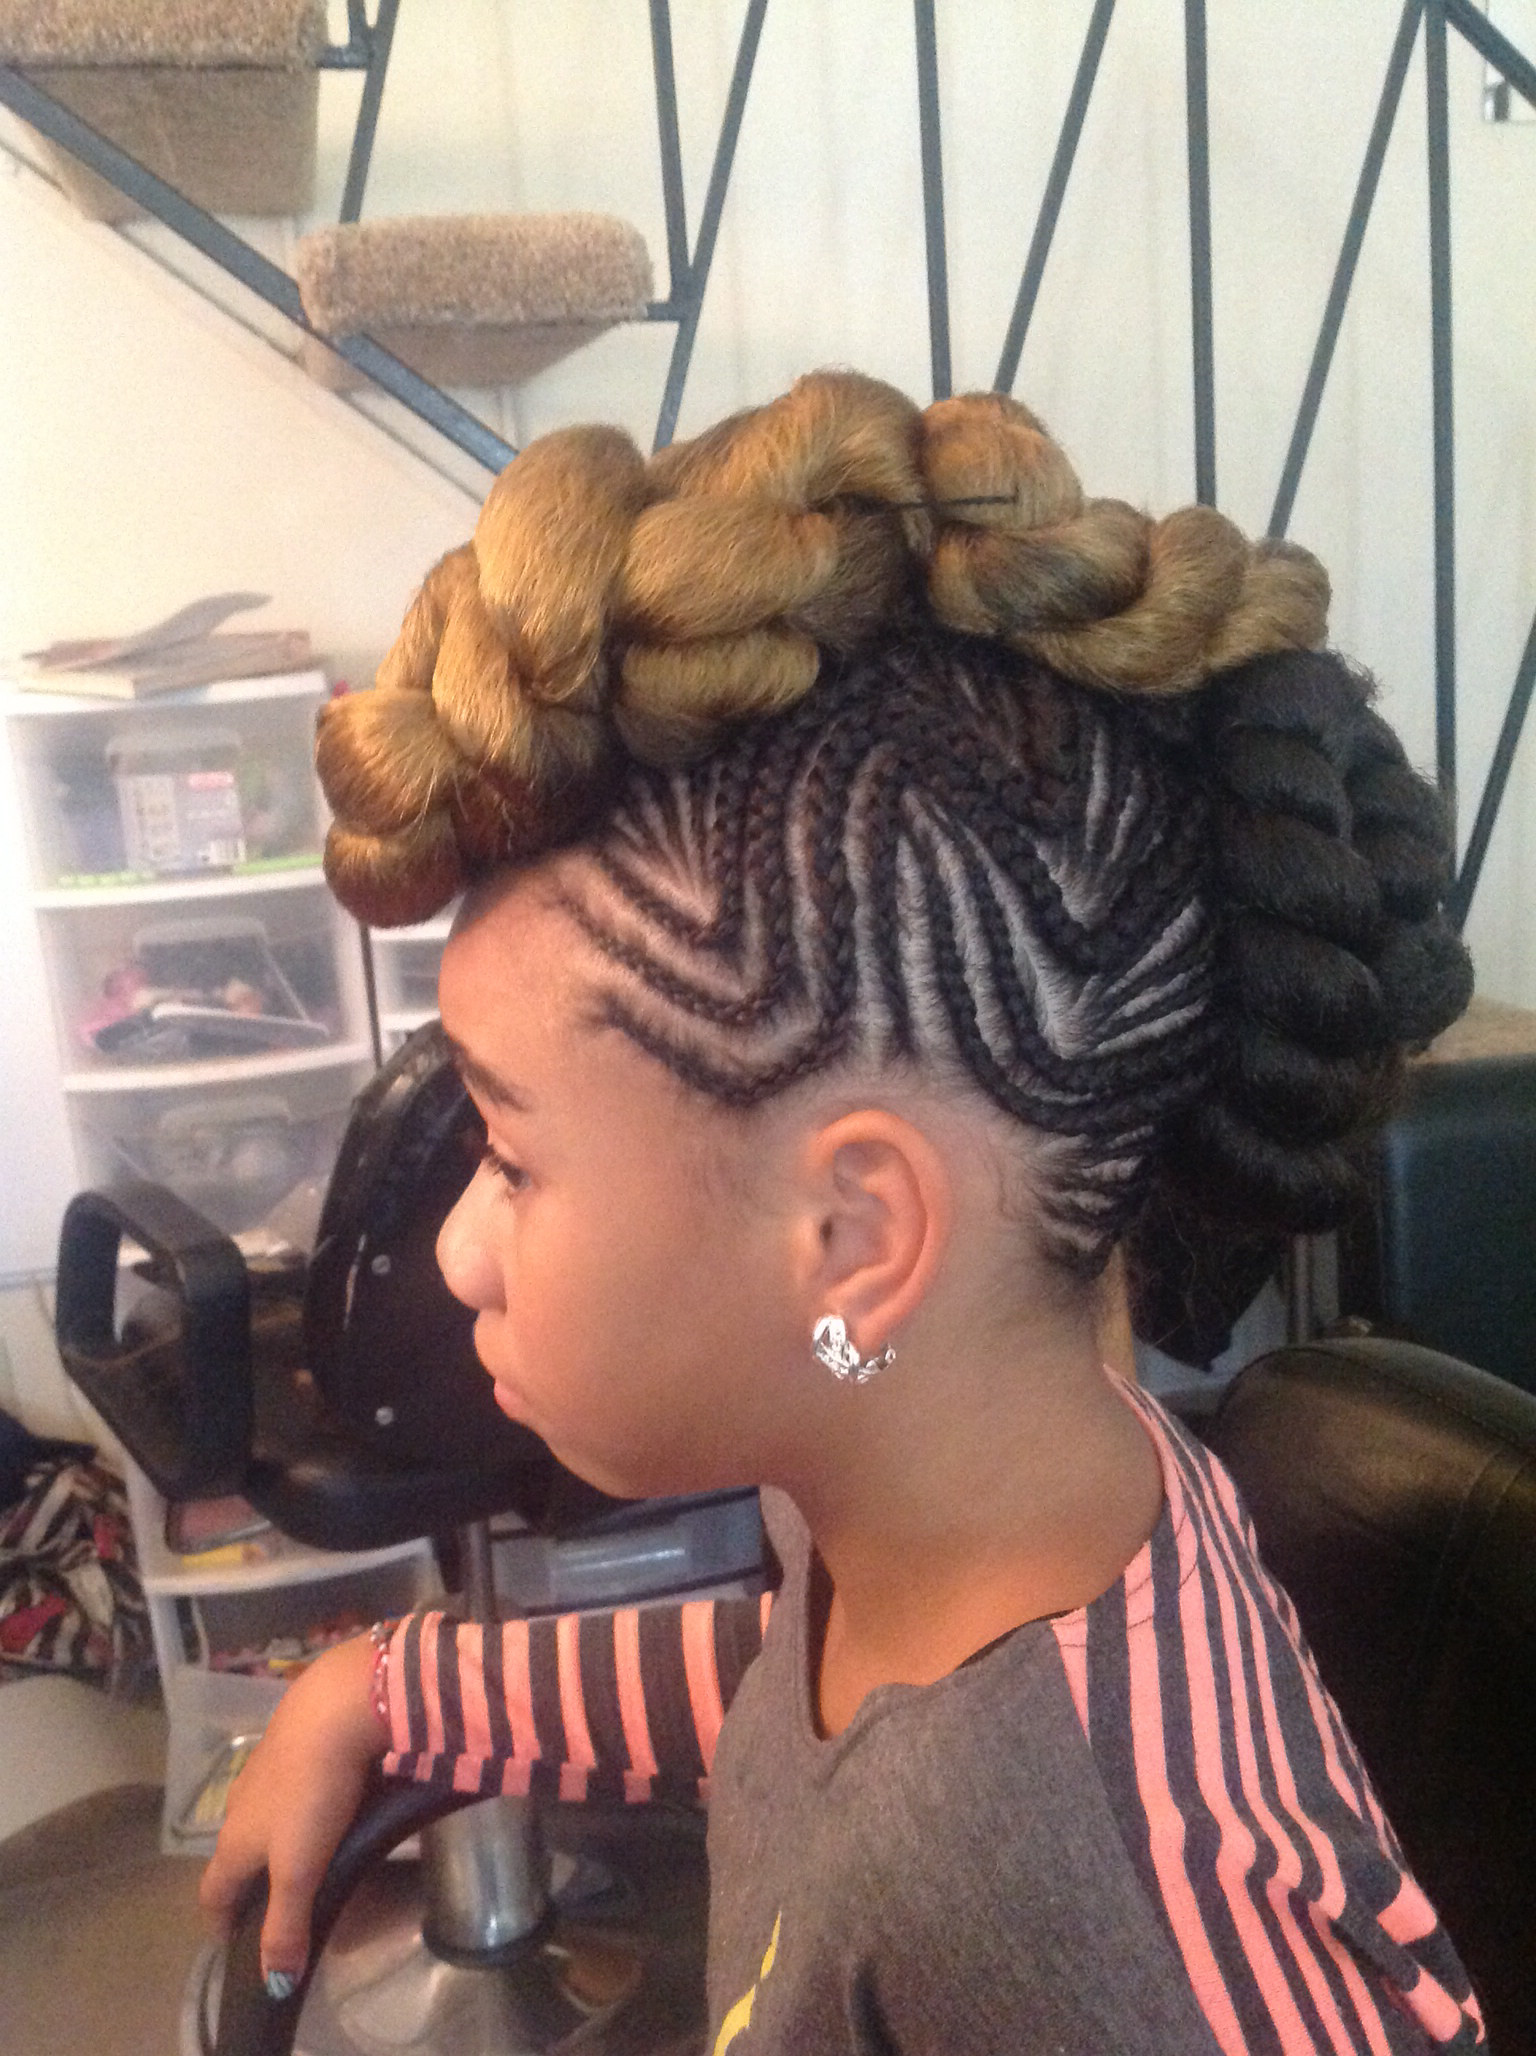 15 Foremost Braided Mohawk Hairstyles – Mohawk With Braids Pertaining To Famous Twisted And Braided Mohawk Hairstyles (View 1 of 20)